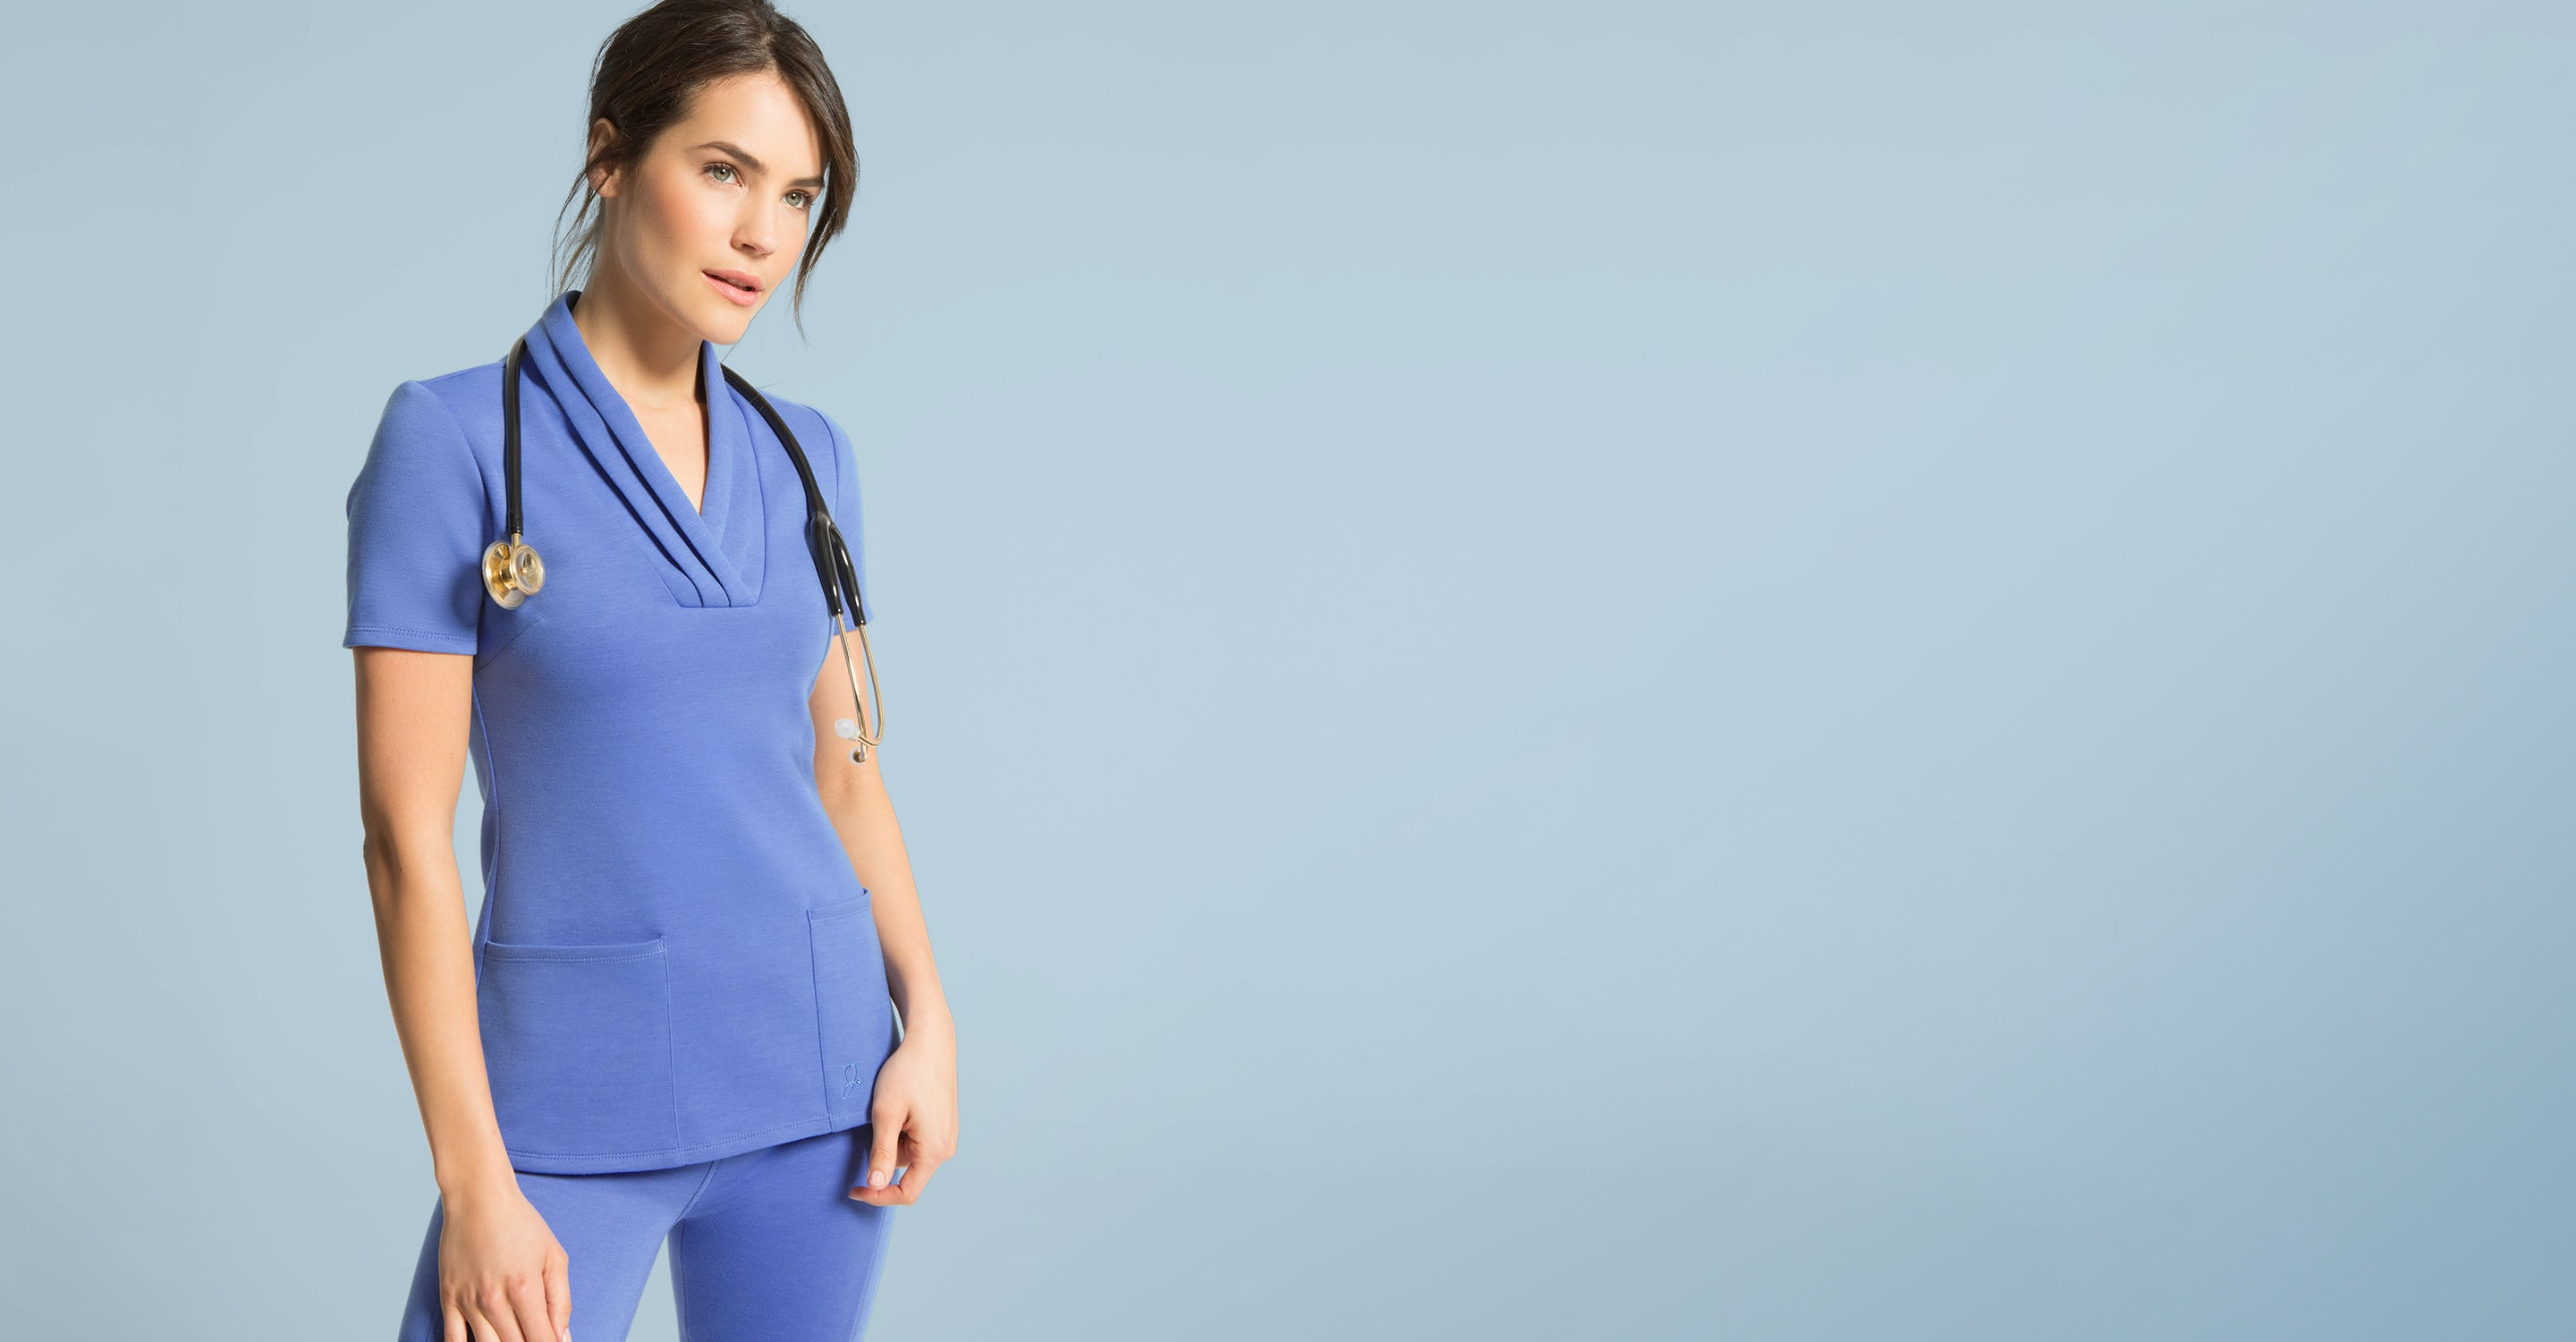 jacket up tgr ceilings health view indulgence sil dv fit side sale products color jr scrubs pocket warm ceil grace multi blue